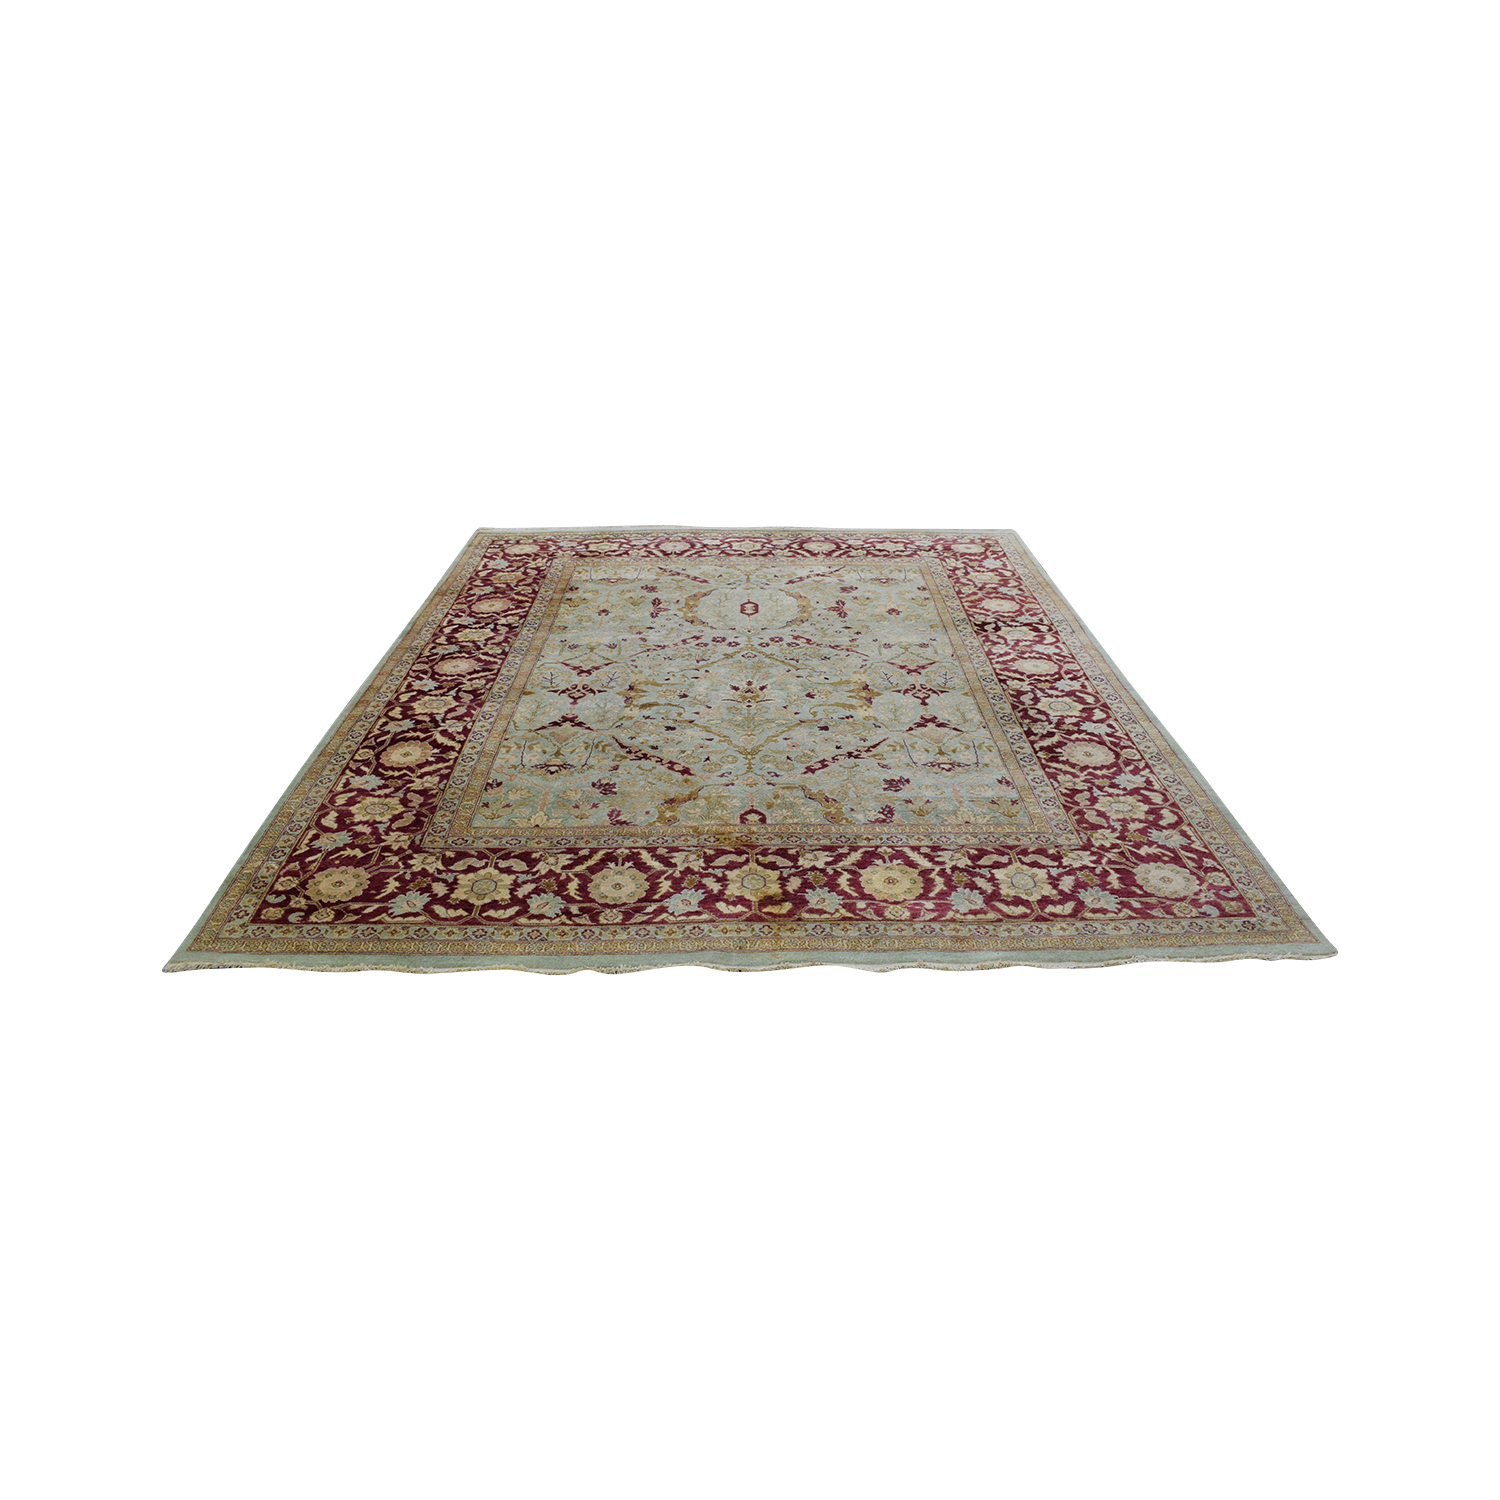 buy Oriental Area Rug Bloomingdale's Decor